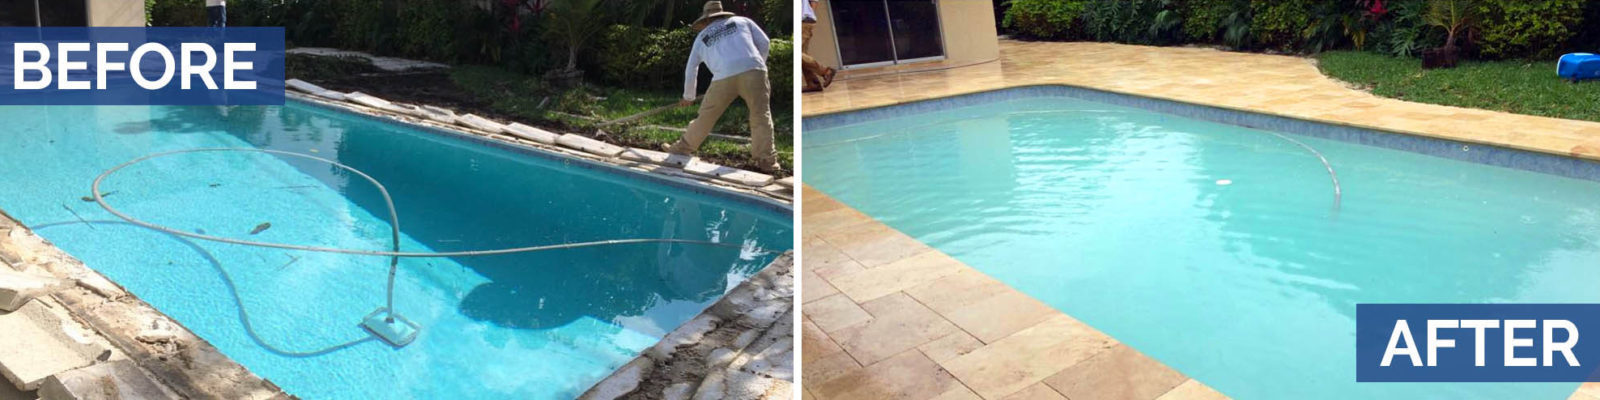 pool remodeling broward